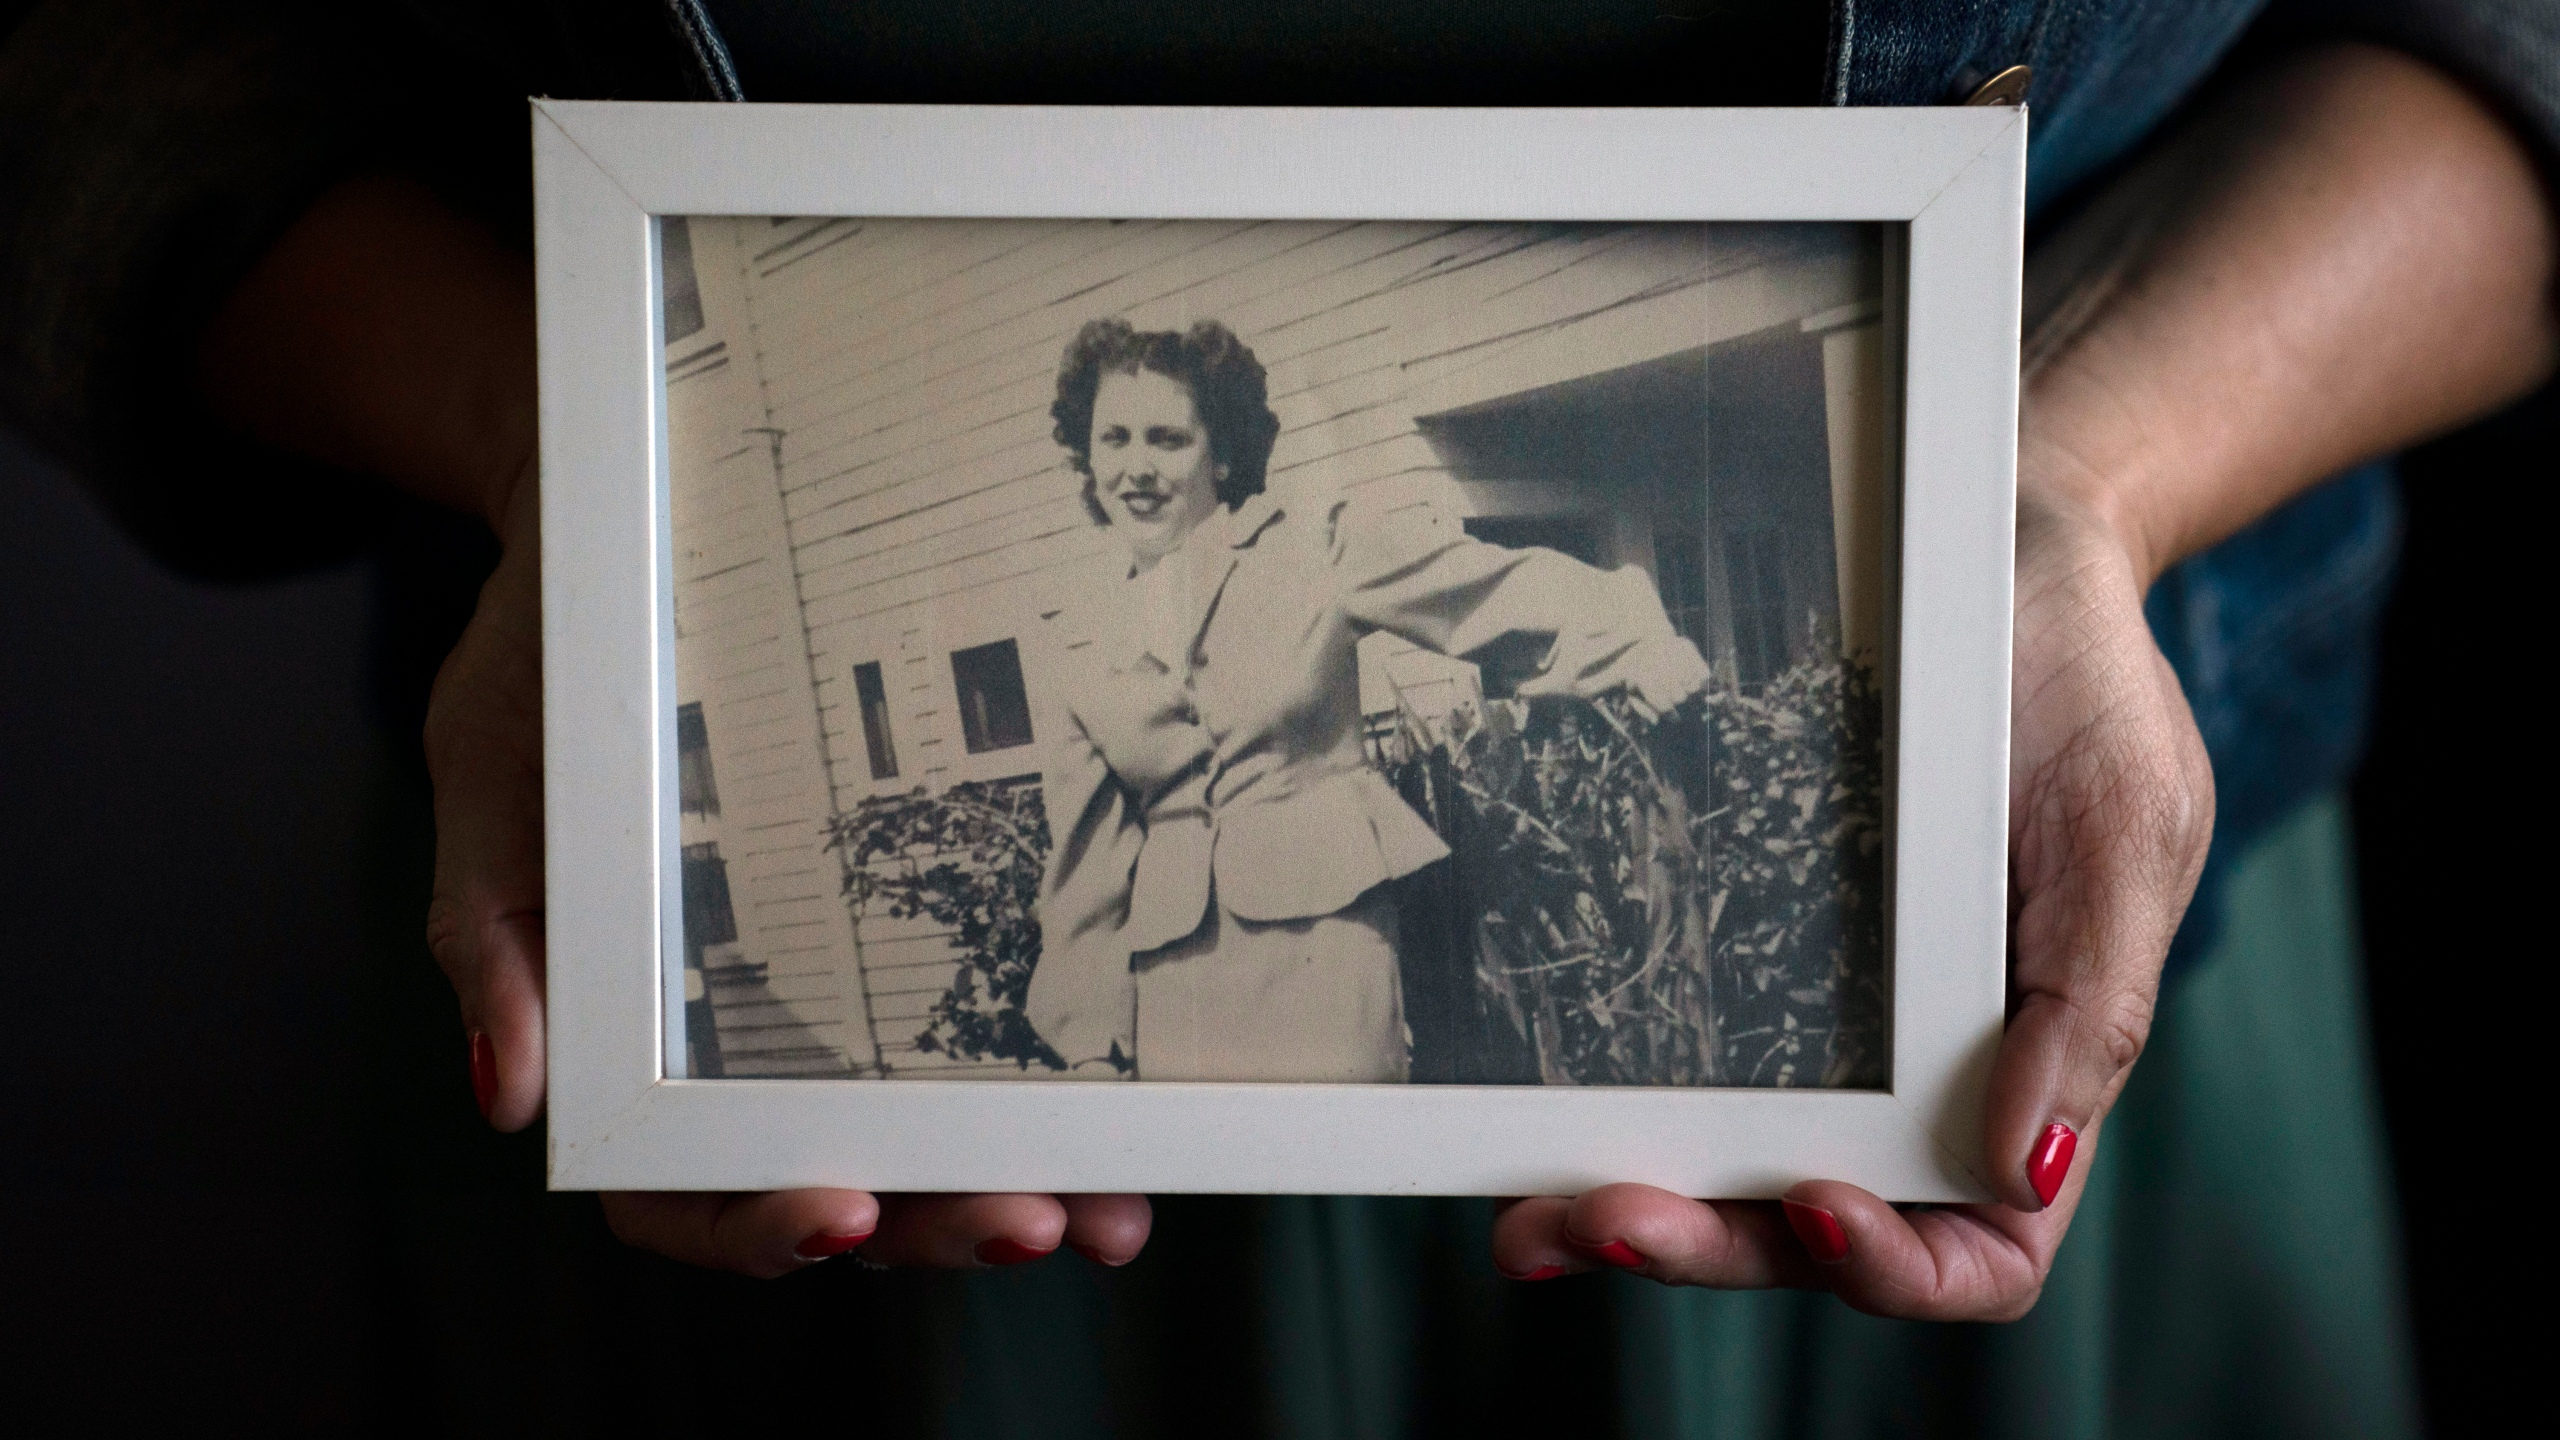 Stacy Cordova, whose aunt was a victim of California's forced sterilization program that began in 1909, holds a framed photo of her aunt Mary Franco on July 5, 2021, in Azusa. (Jae C. Hong / Associated Press)